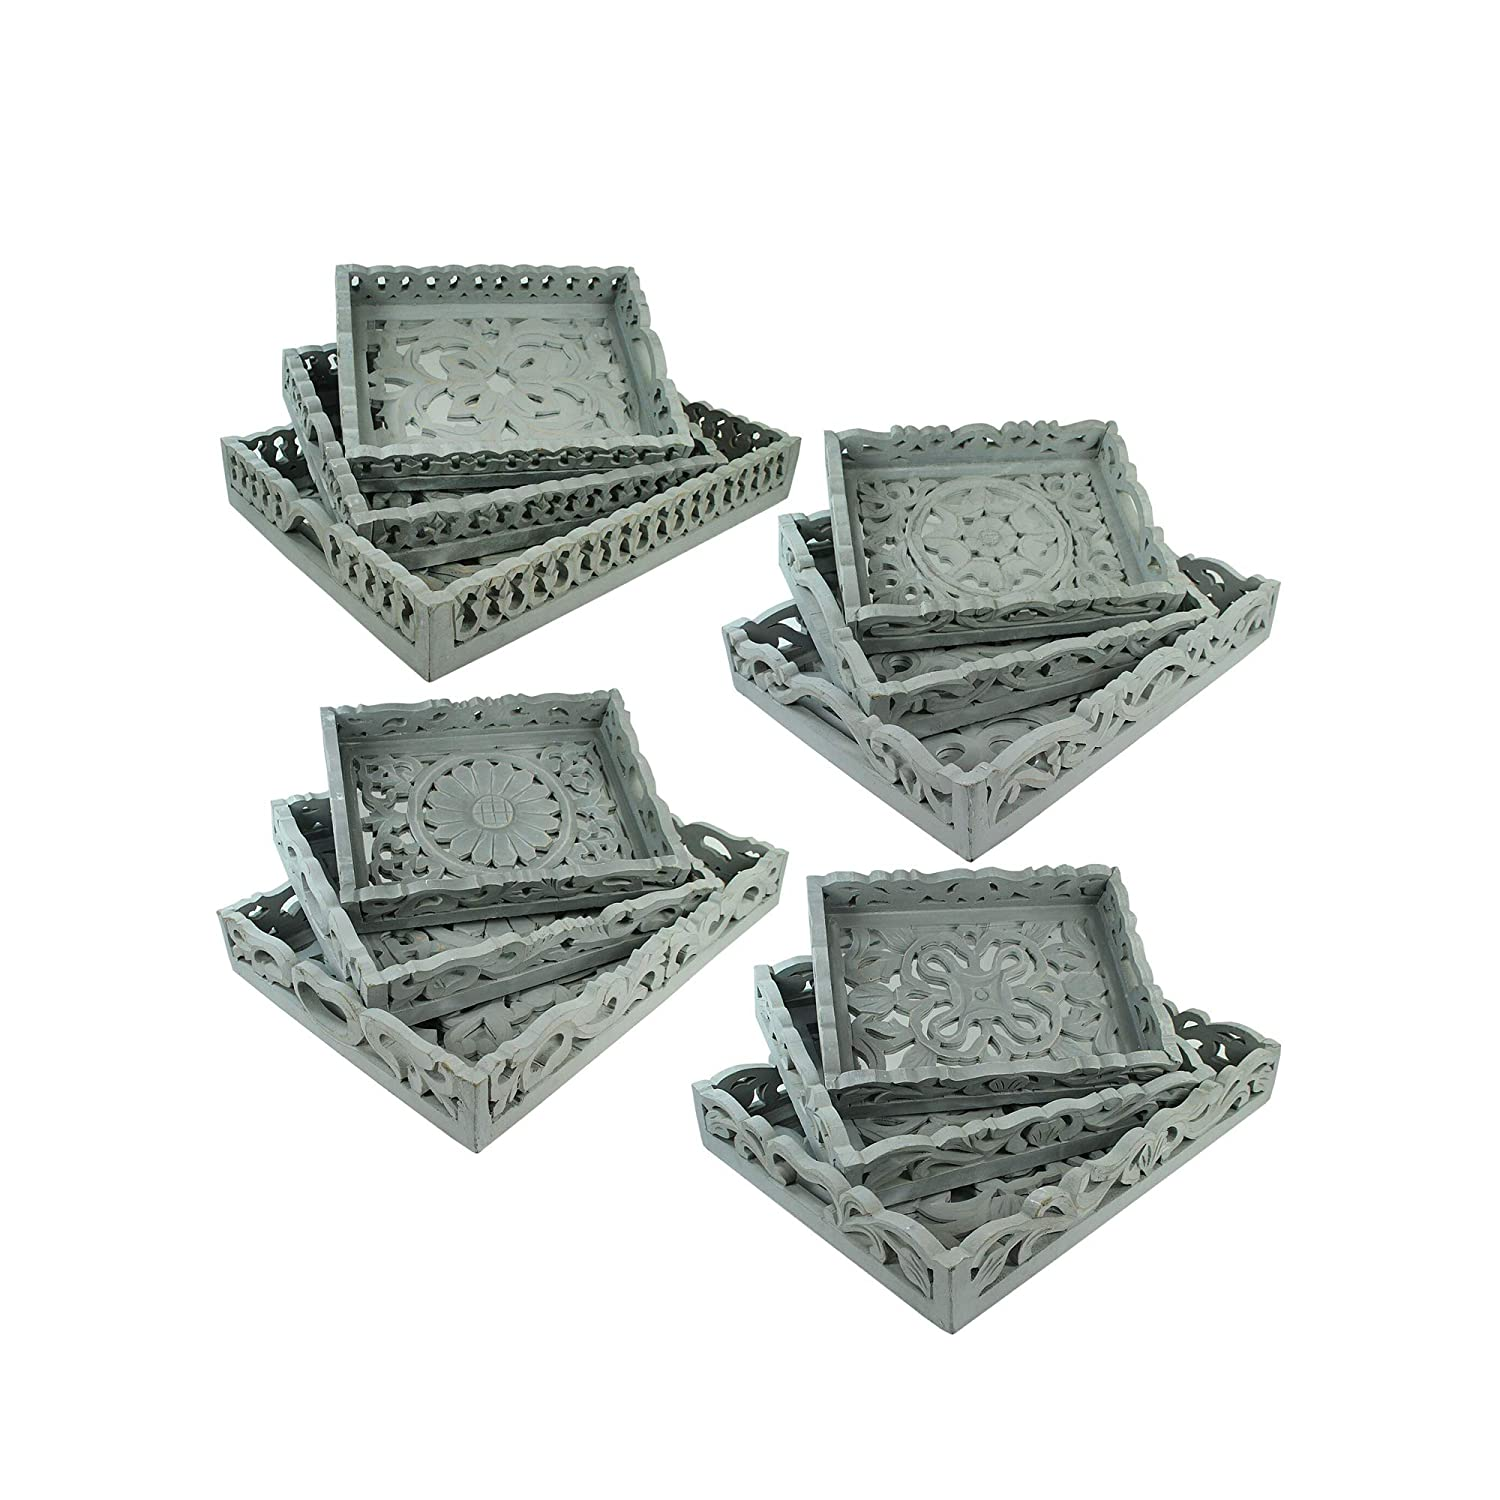 Benjara 3 Piece Mirror Inset Tray Set with Wood Carvings Gray Assortment of 4